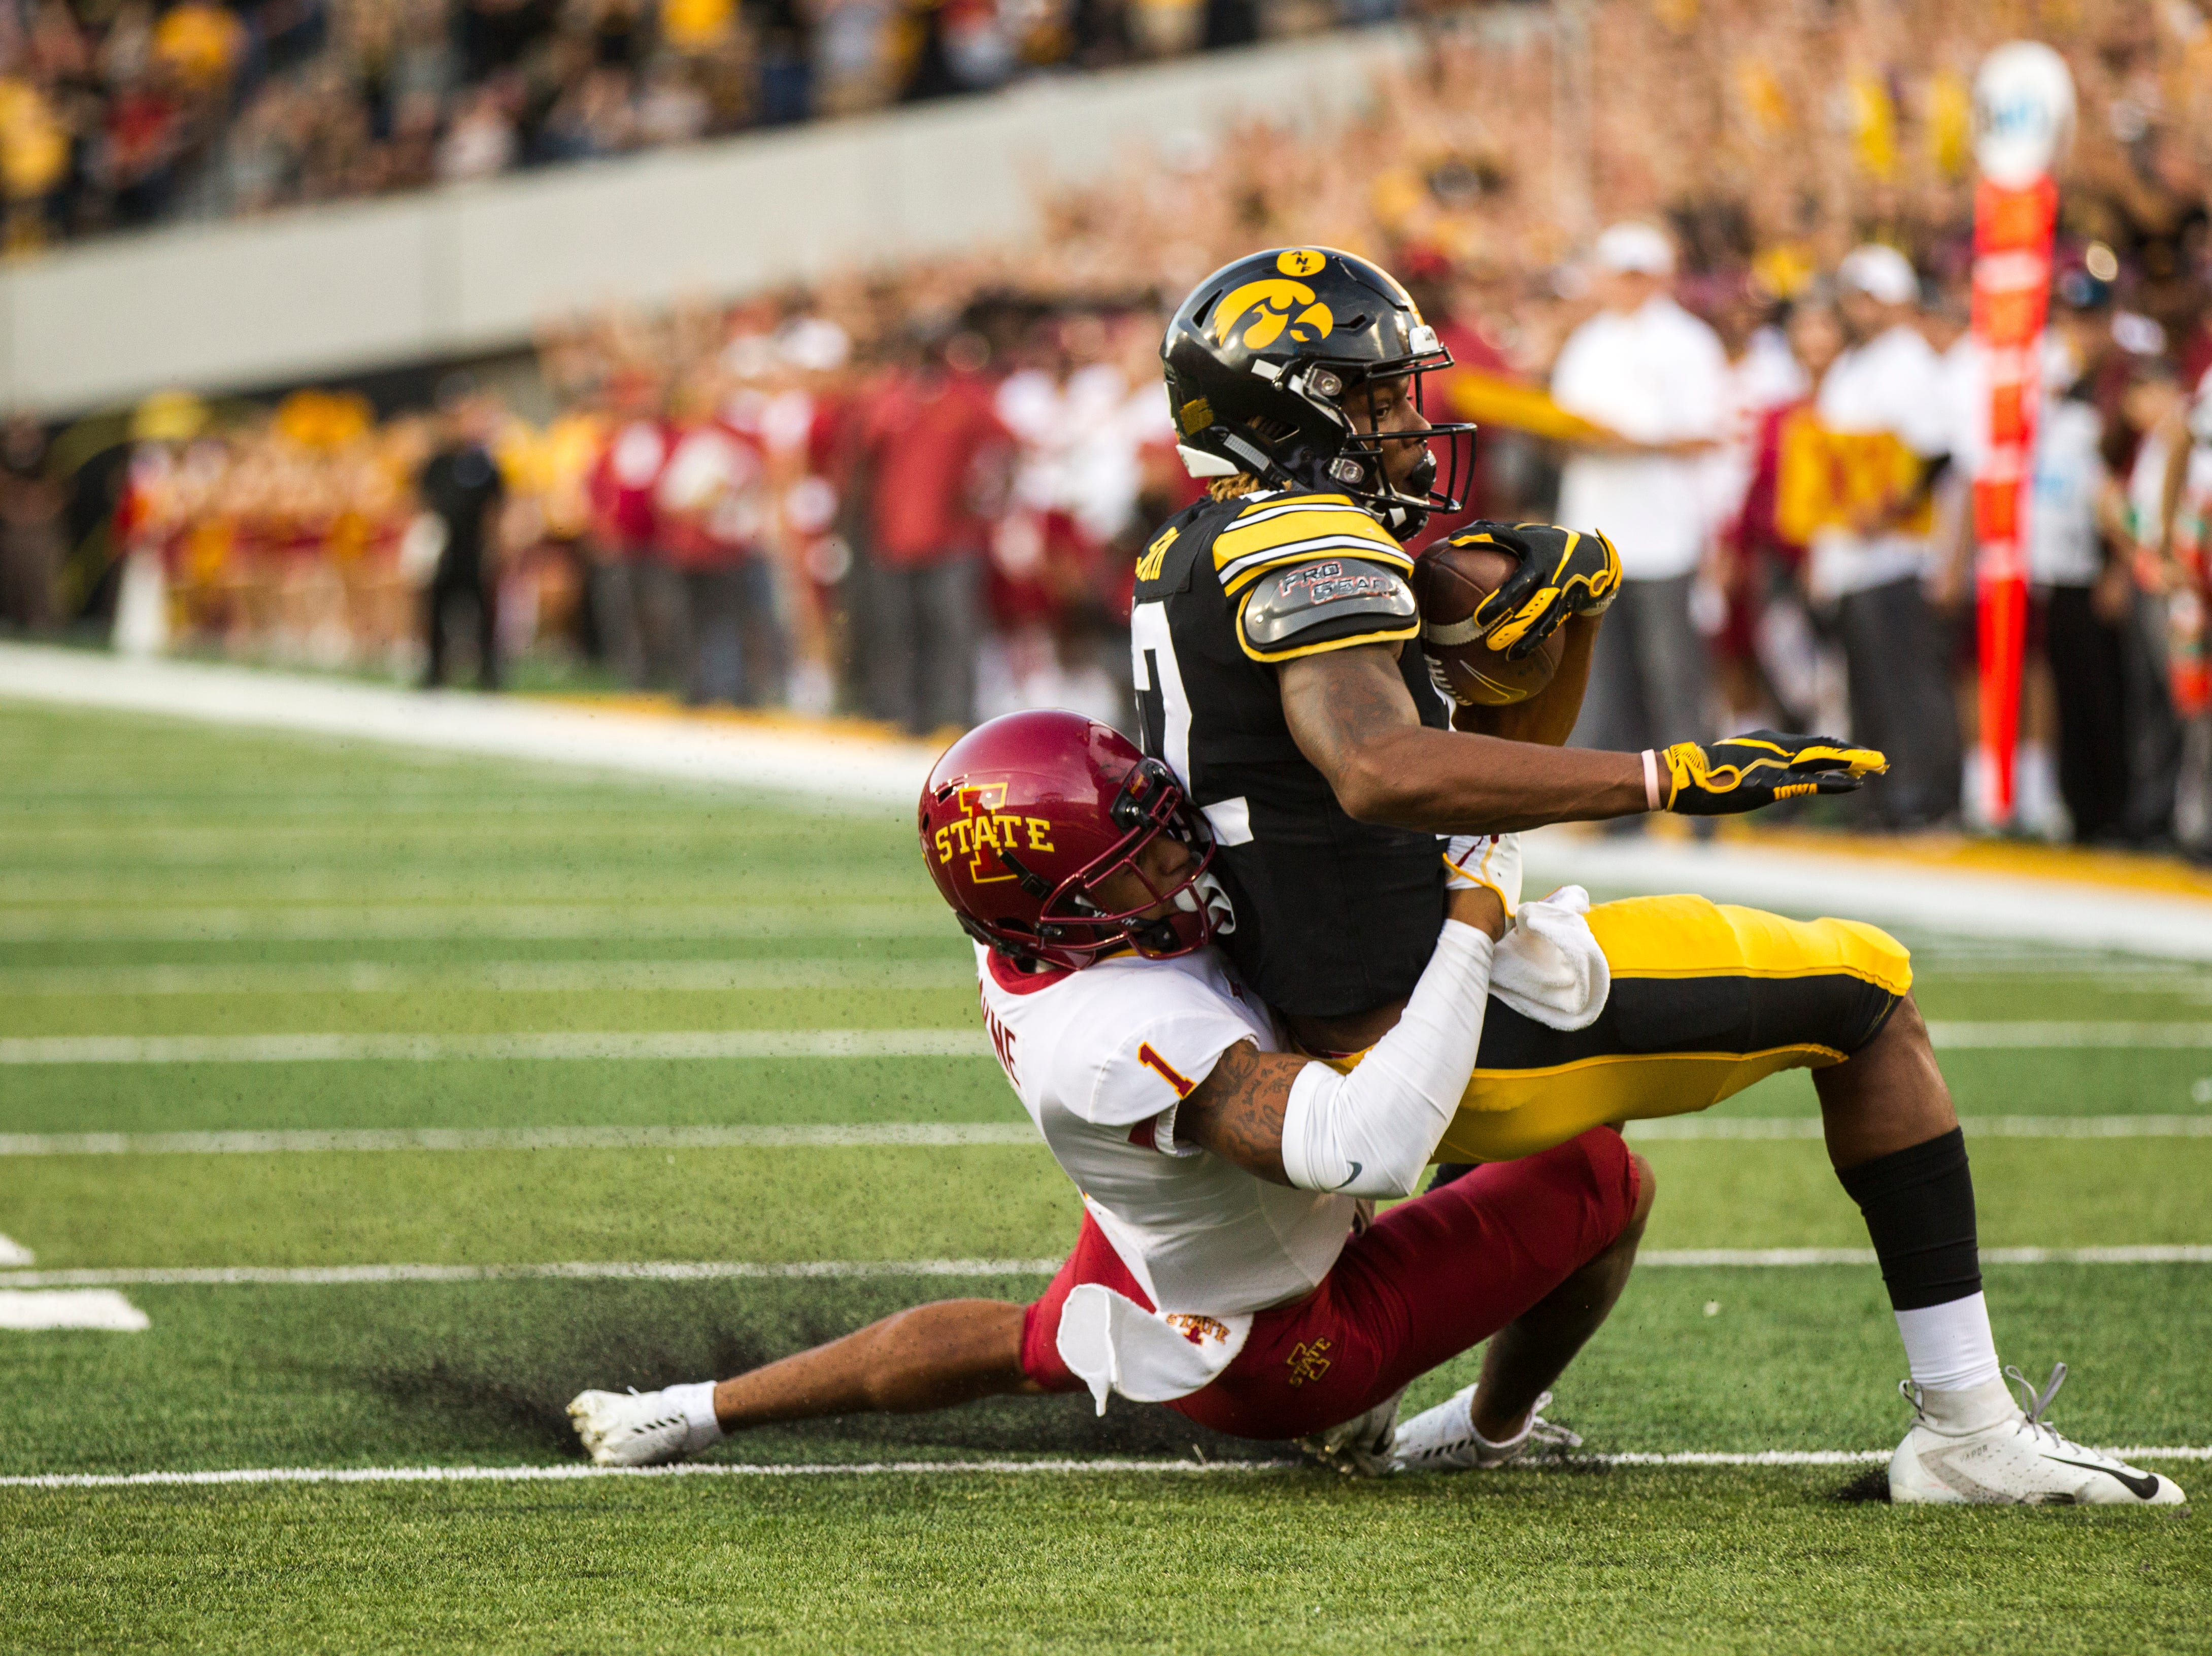 Iowa wide receiver Brandon Smith (12) gets tackled by Iowa State defensive back D'Andre Payne (1) during the Cy-Hawk NCAA football game on Saturday, Sept. 8, 2018, at Kinnick Stadium in Iowa City.